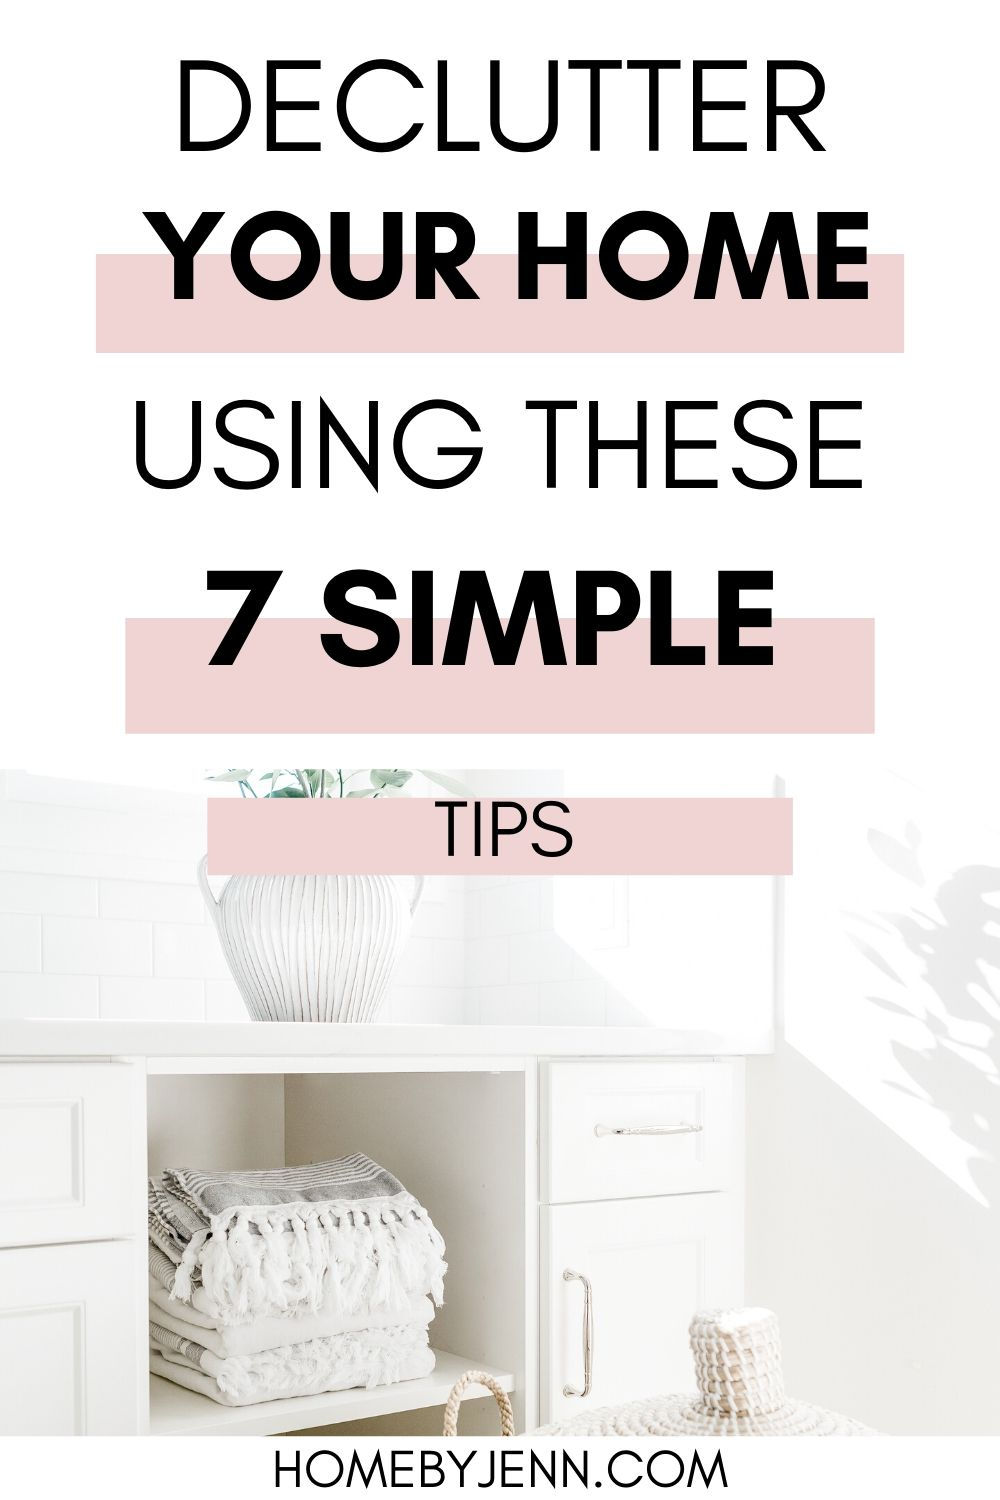 Learn how to declutter your home following these 7 simple steps. If you're overwhelmed with the clutter then these decluttering tips will help. #declutter #declutteringtips #howtodeclutter #declutteringtipsandtricks #declutterhome via @homebyjenn